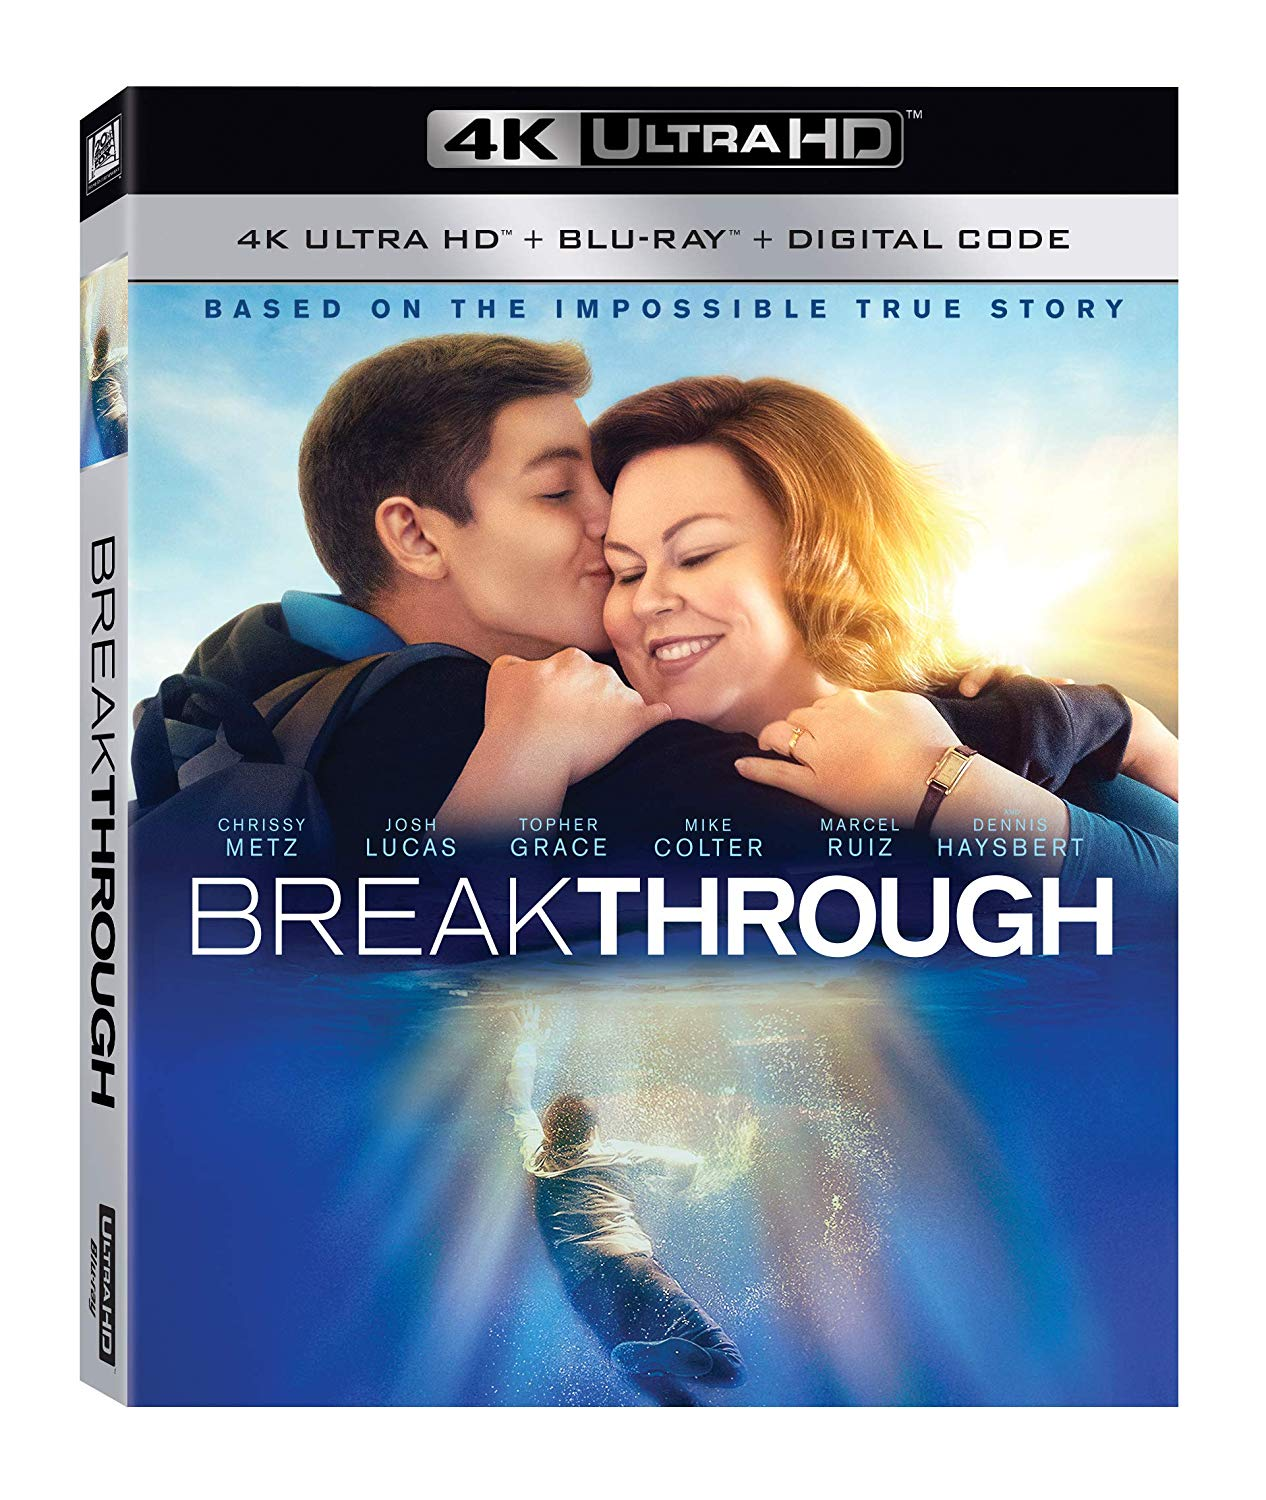 Download Breakthrough 2019 BluRay 2160p x265 10bit HDR 2Audios mUHD